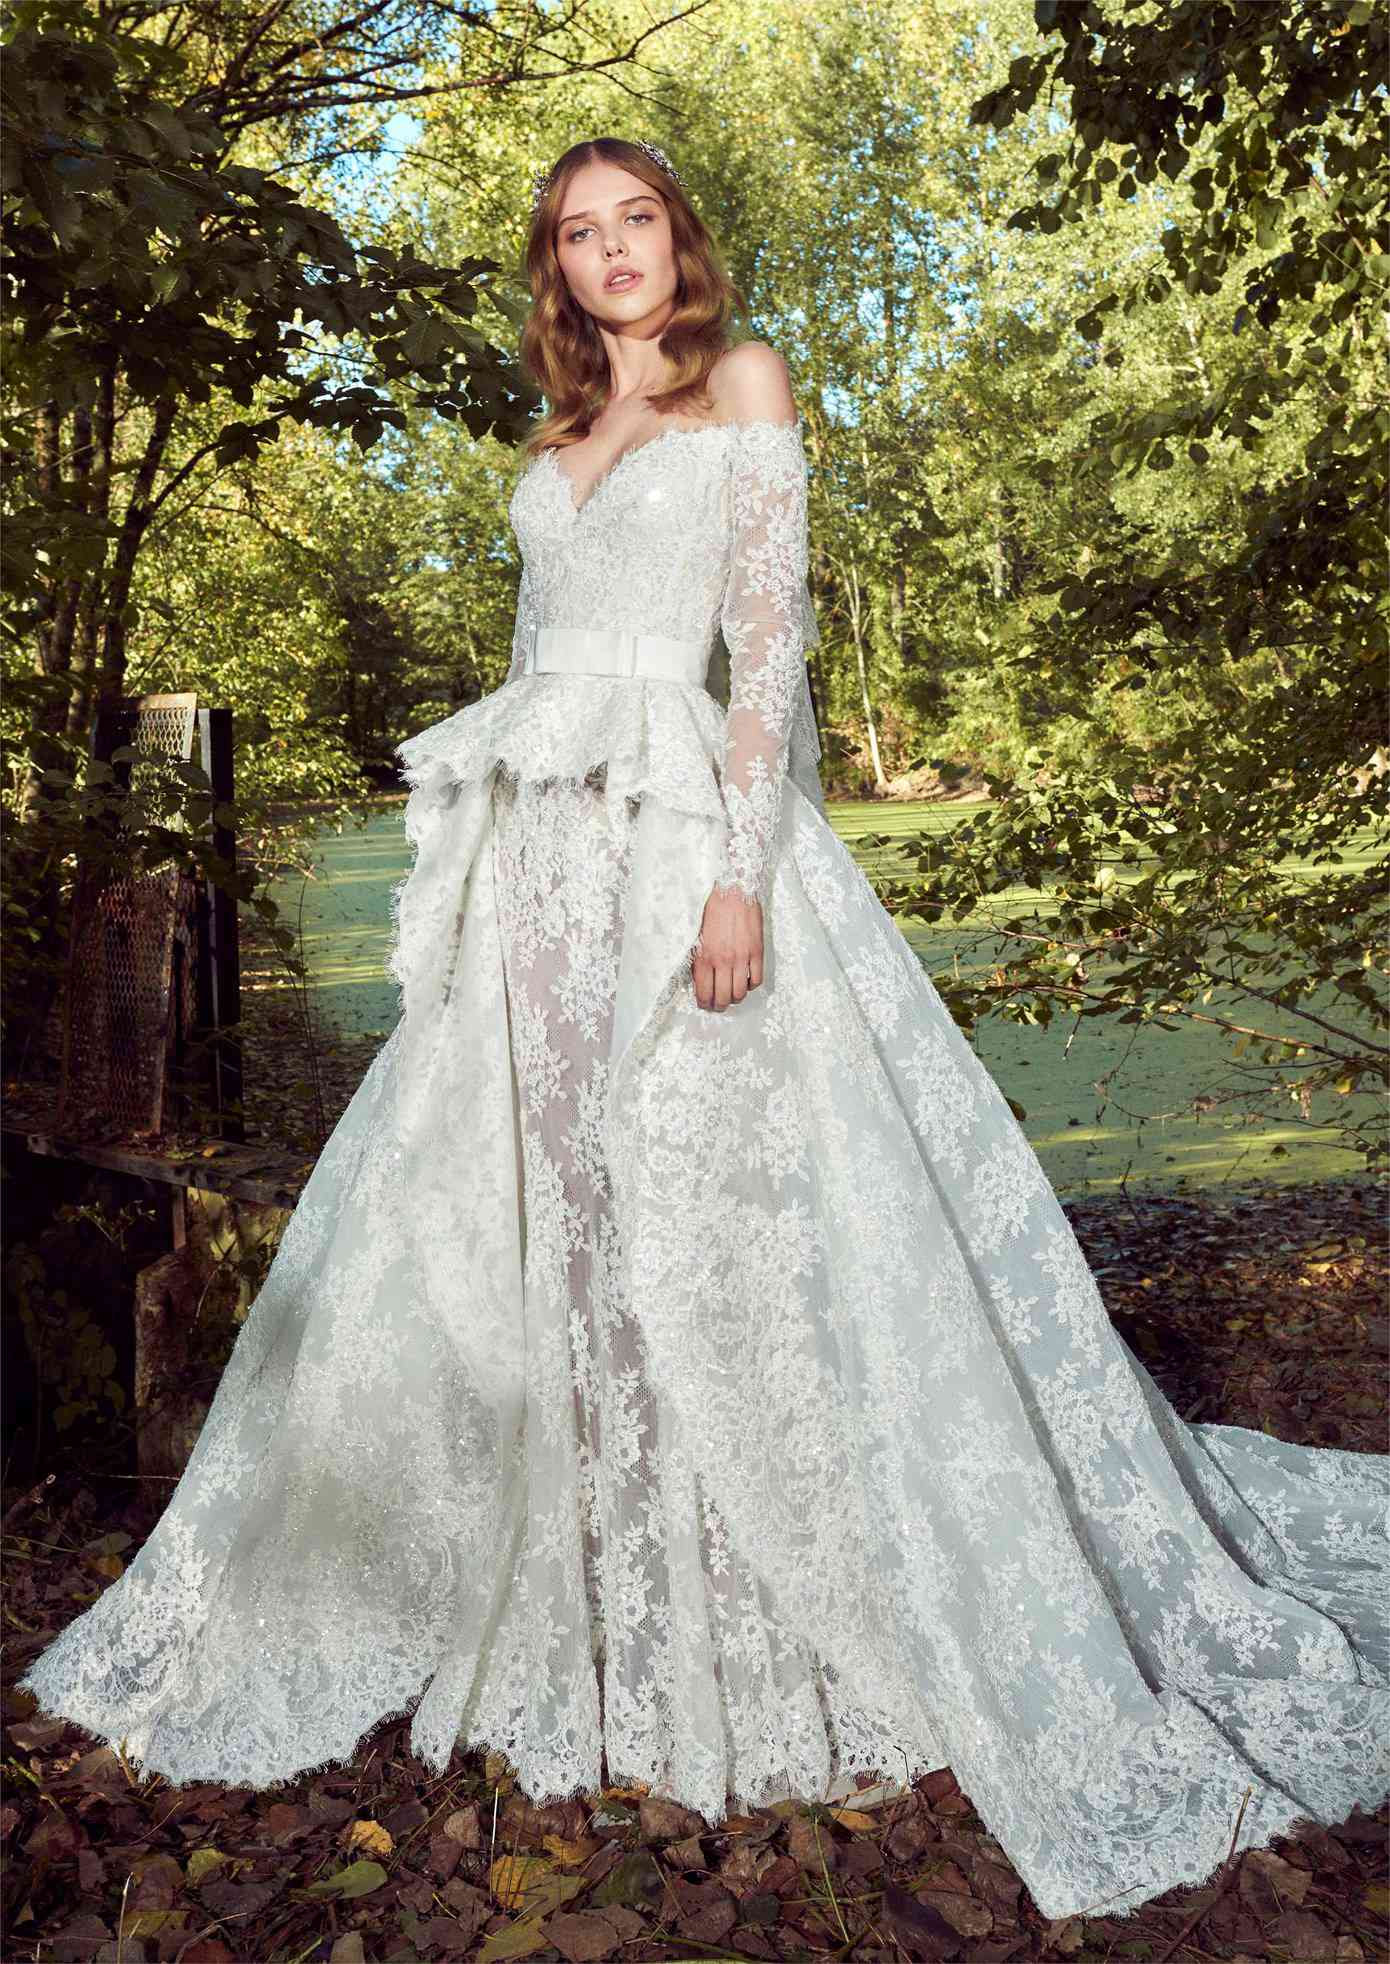 Model in allover lace gown with long off-the-shoulder sleeves and a voluminous overskirt with an eyelash lace trim